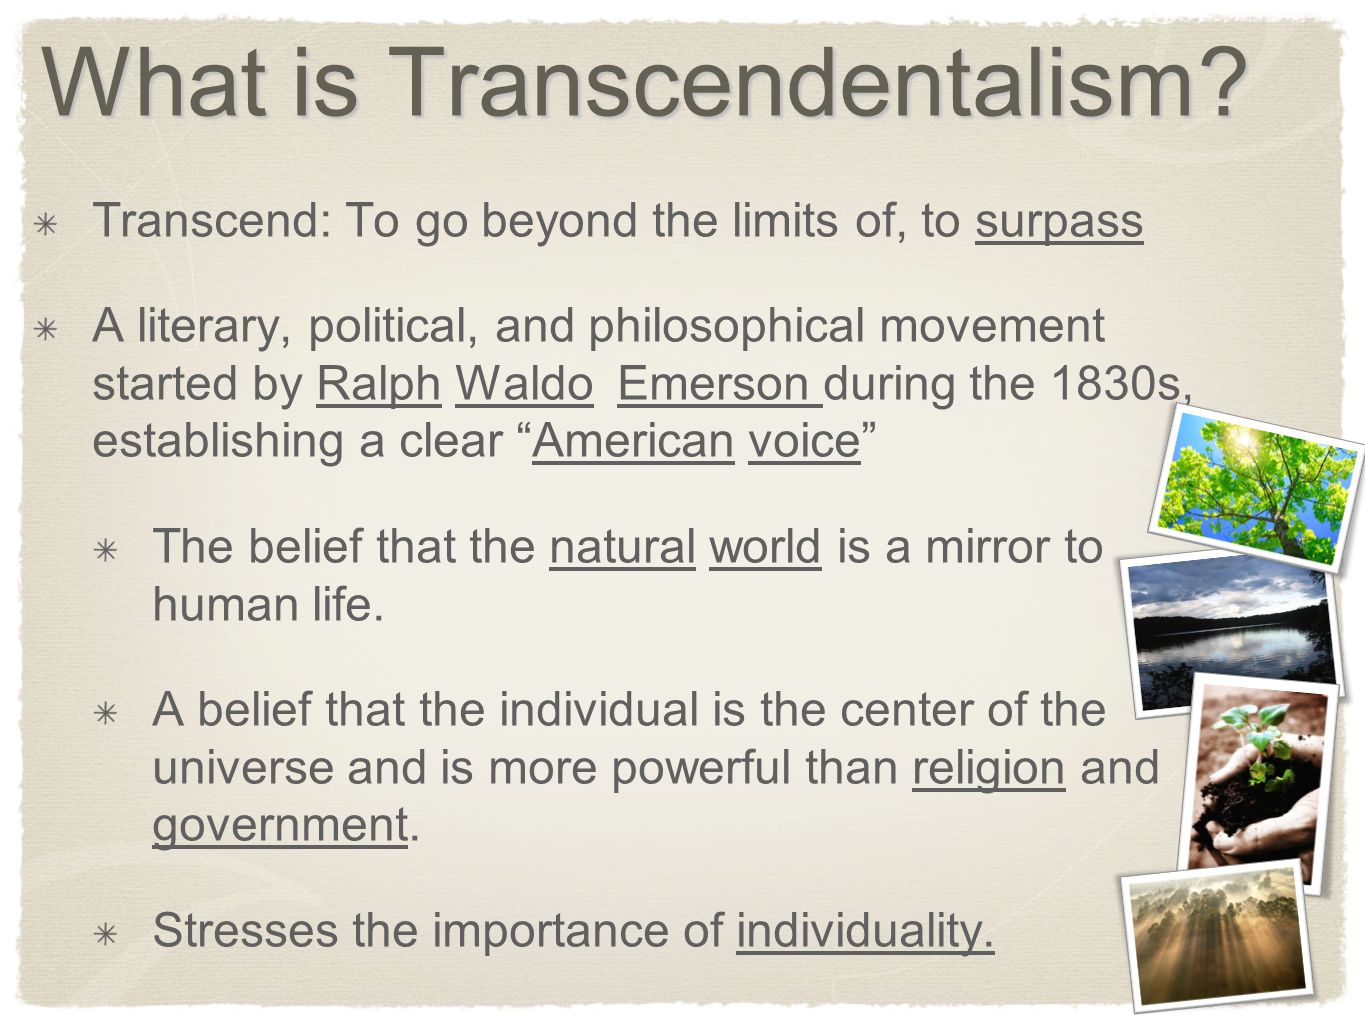 The 19th century Transcendentalist movement in the US ?